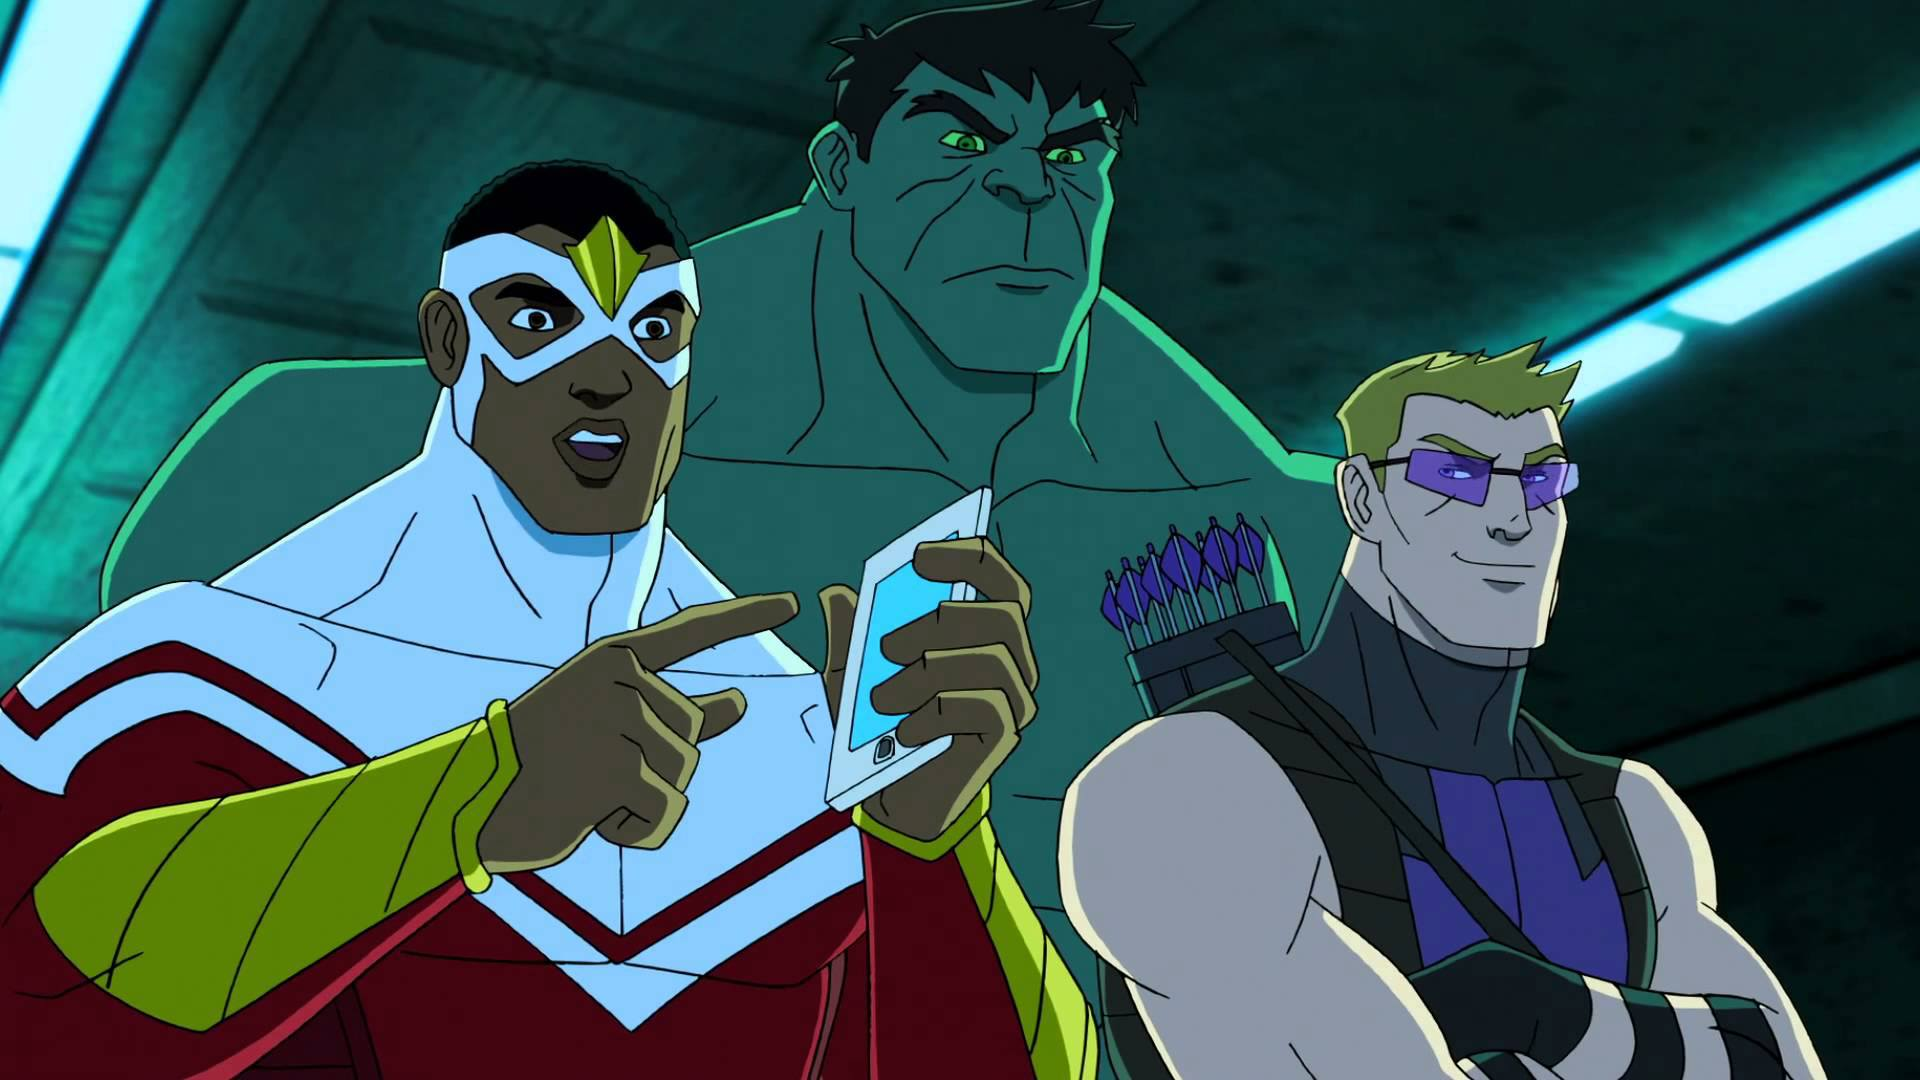 Marvel's Avengers Assemble Comes to Disney XD This Summer, Sneak Peak This Weekend